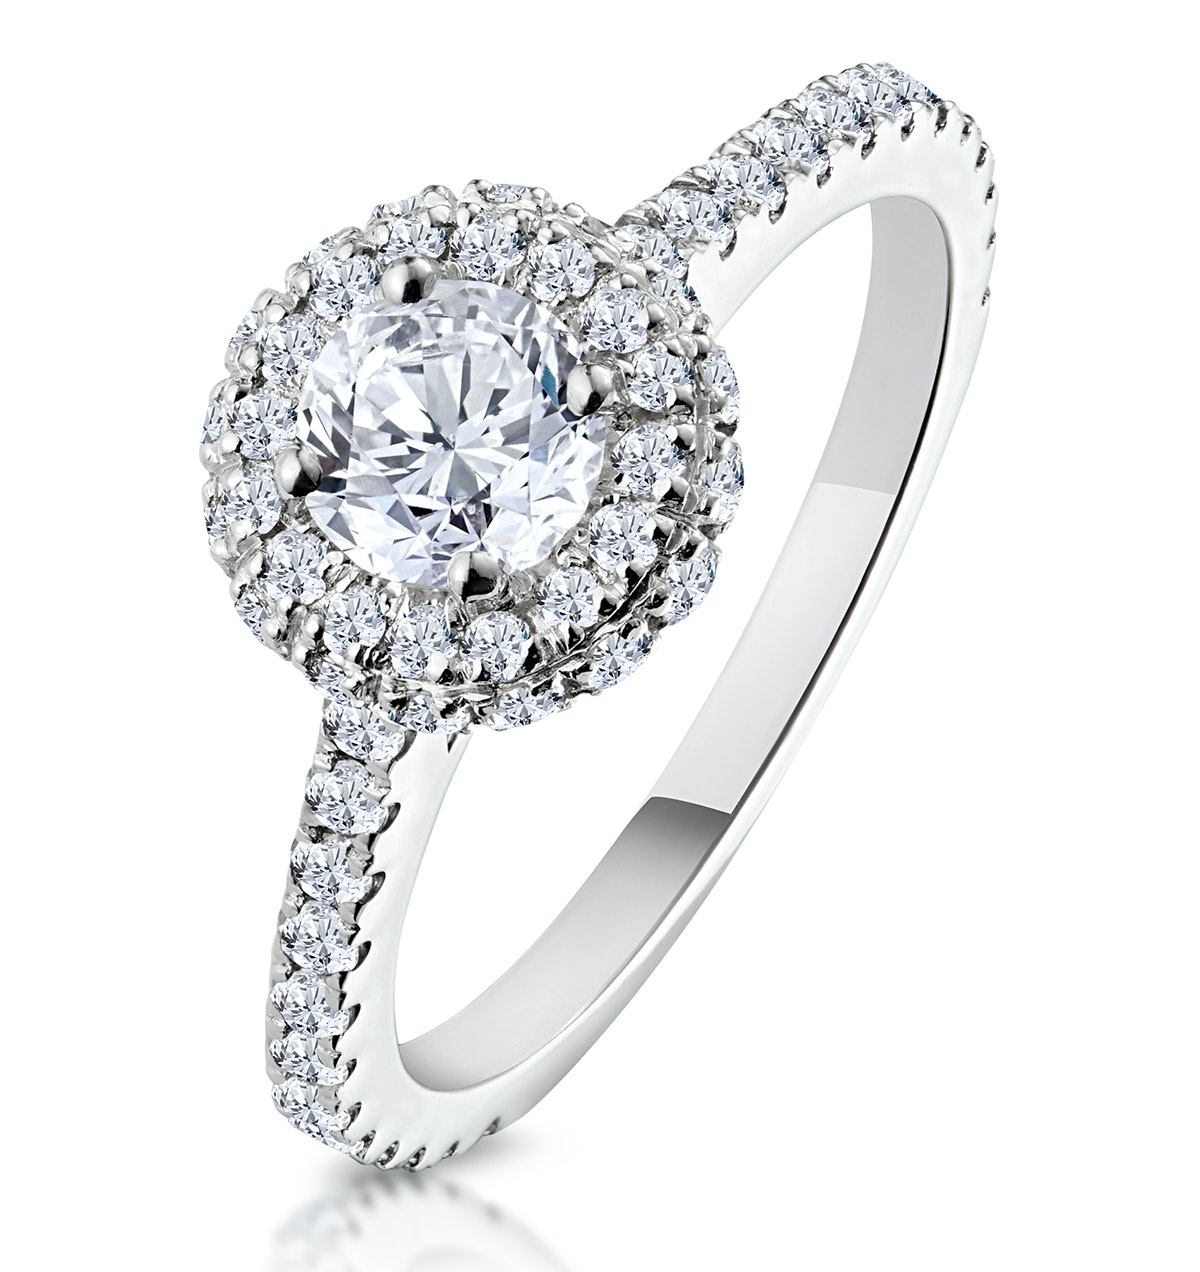 Valerie GIA Diamond Halo Engagement Ring in Platinum 1.10ct G/SI1